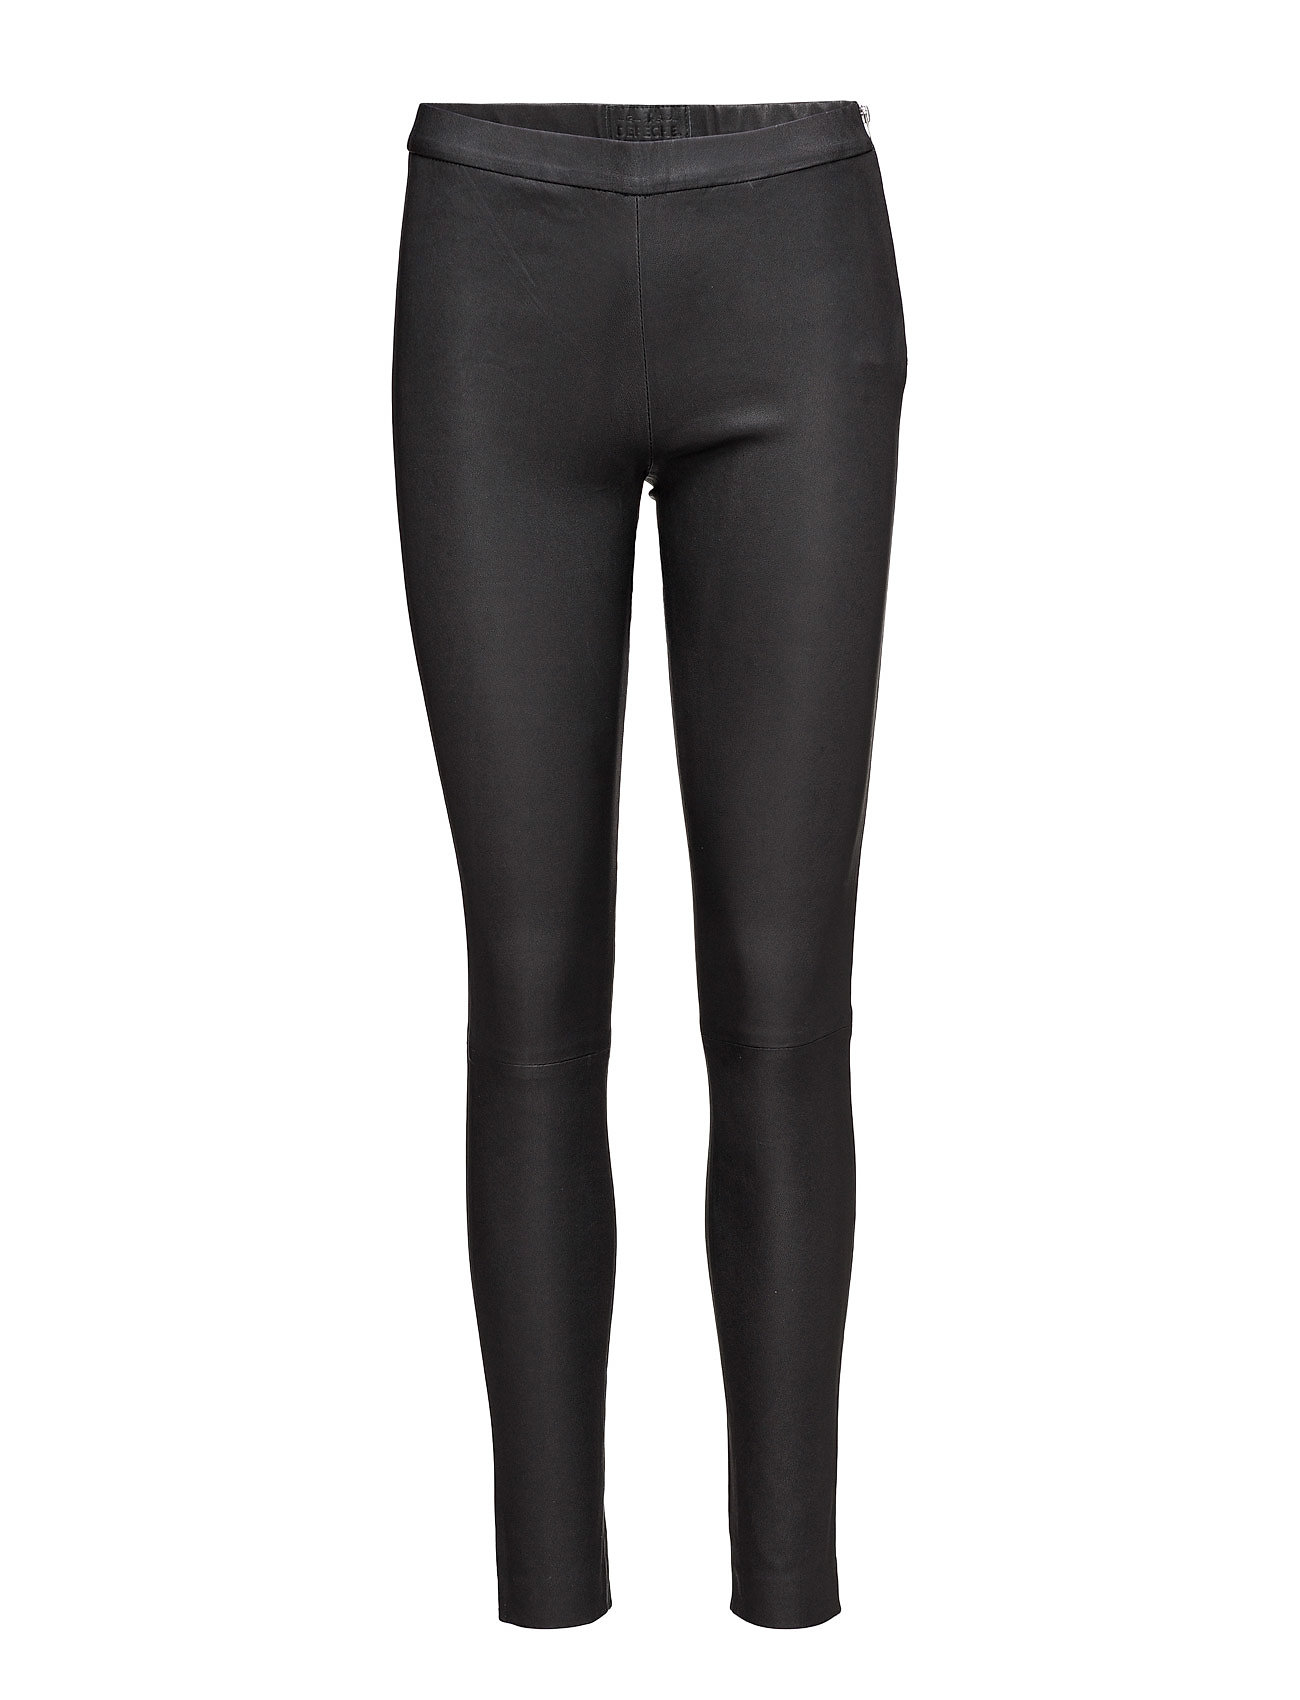 Image of Pants Leather Leggings/Bukser Sort DEPECHE (2382638127)